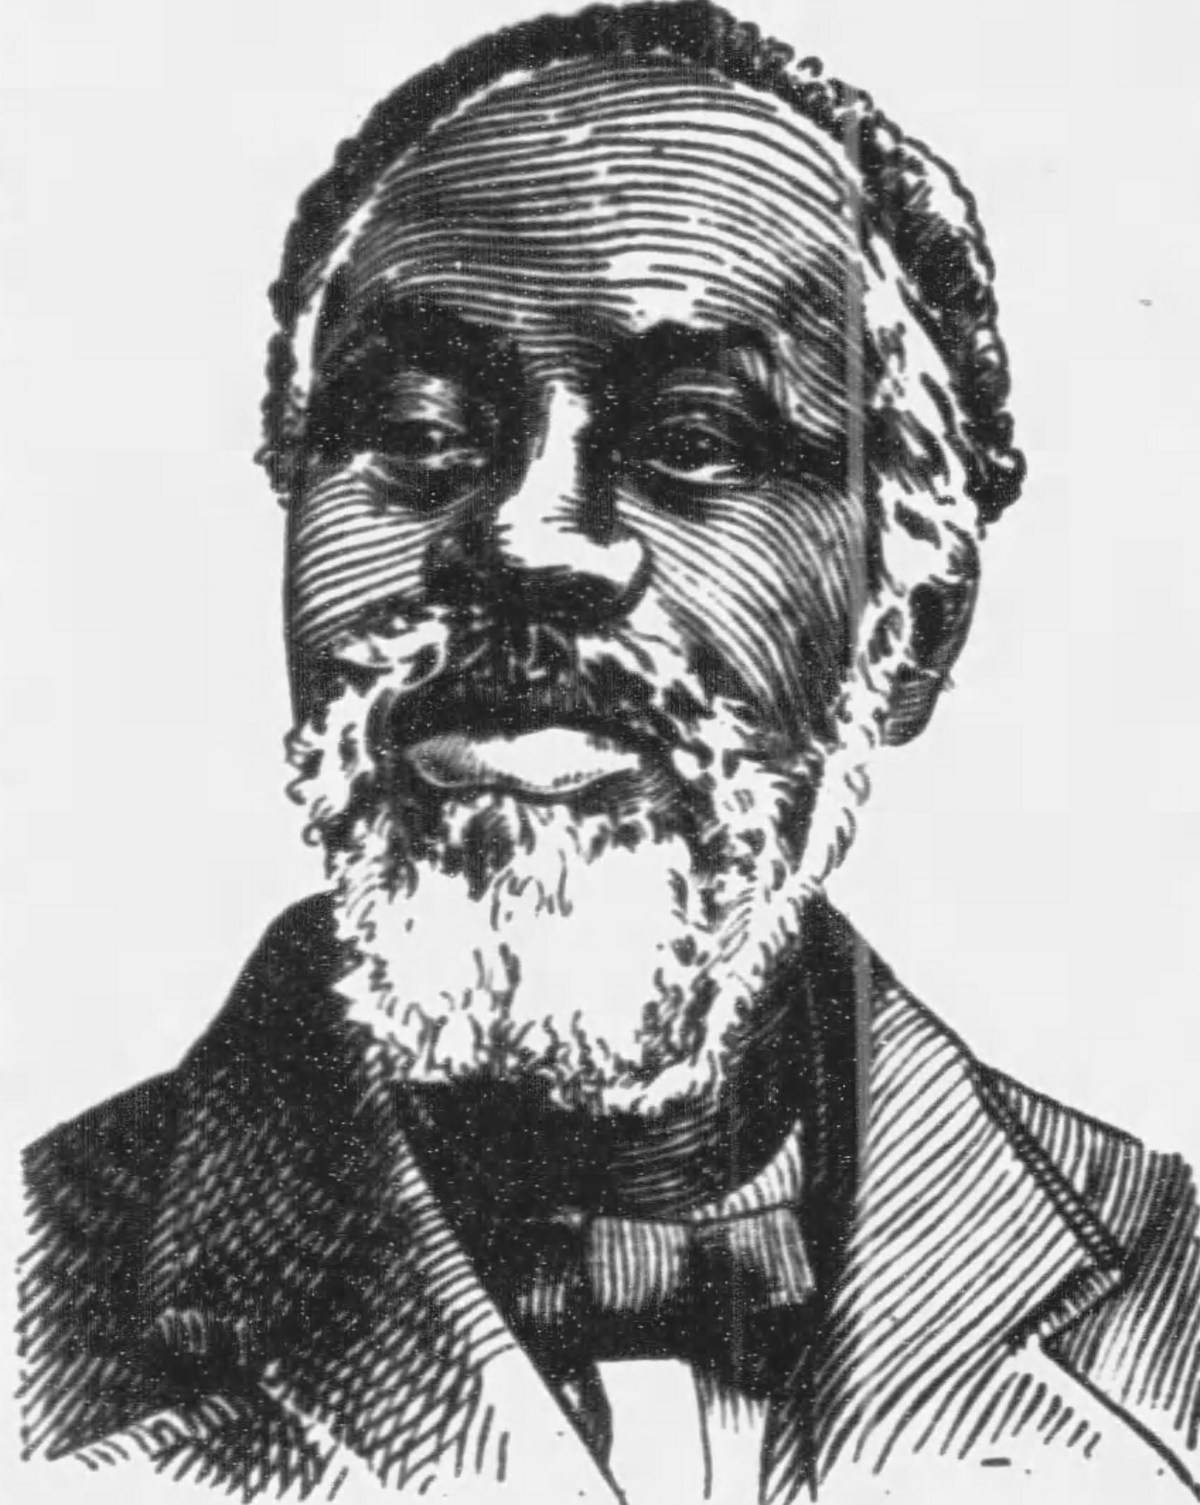 In Their Own Words: 1st Sgt. Carter, 1st Kansas Colored Volunteer Infantry